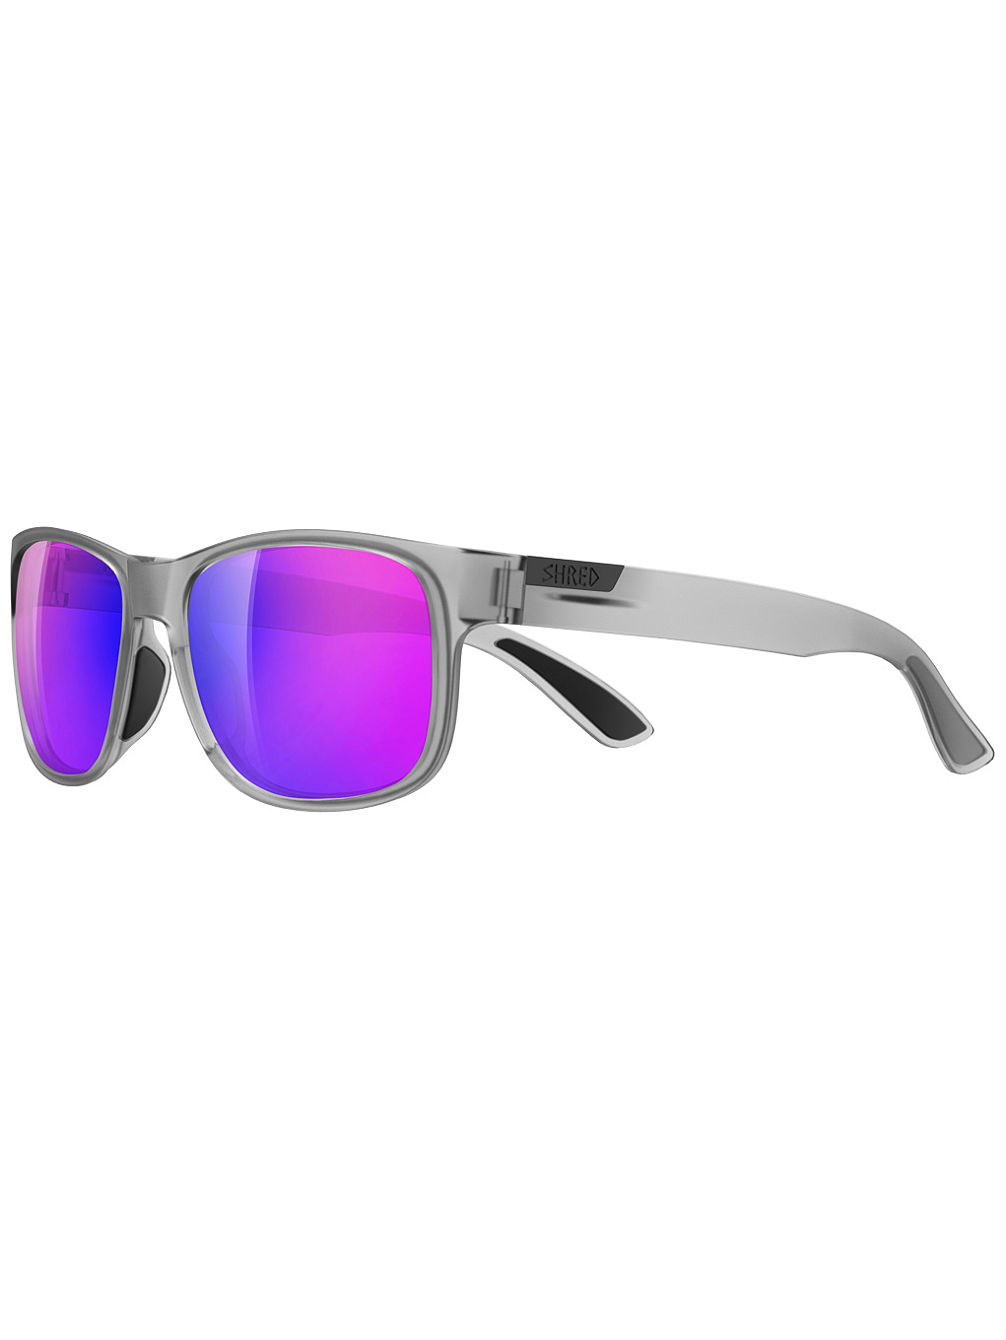 Stomp noweight crystal Sonnenbrille